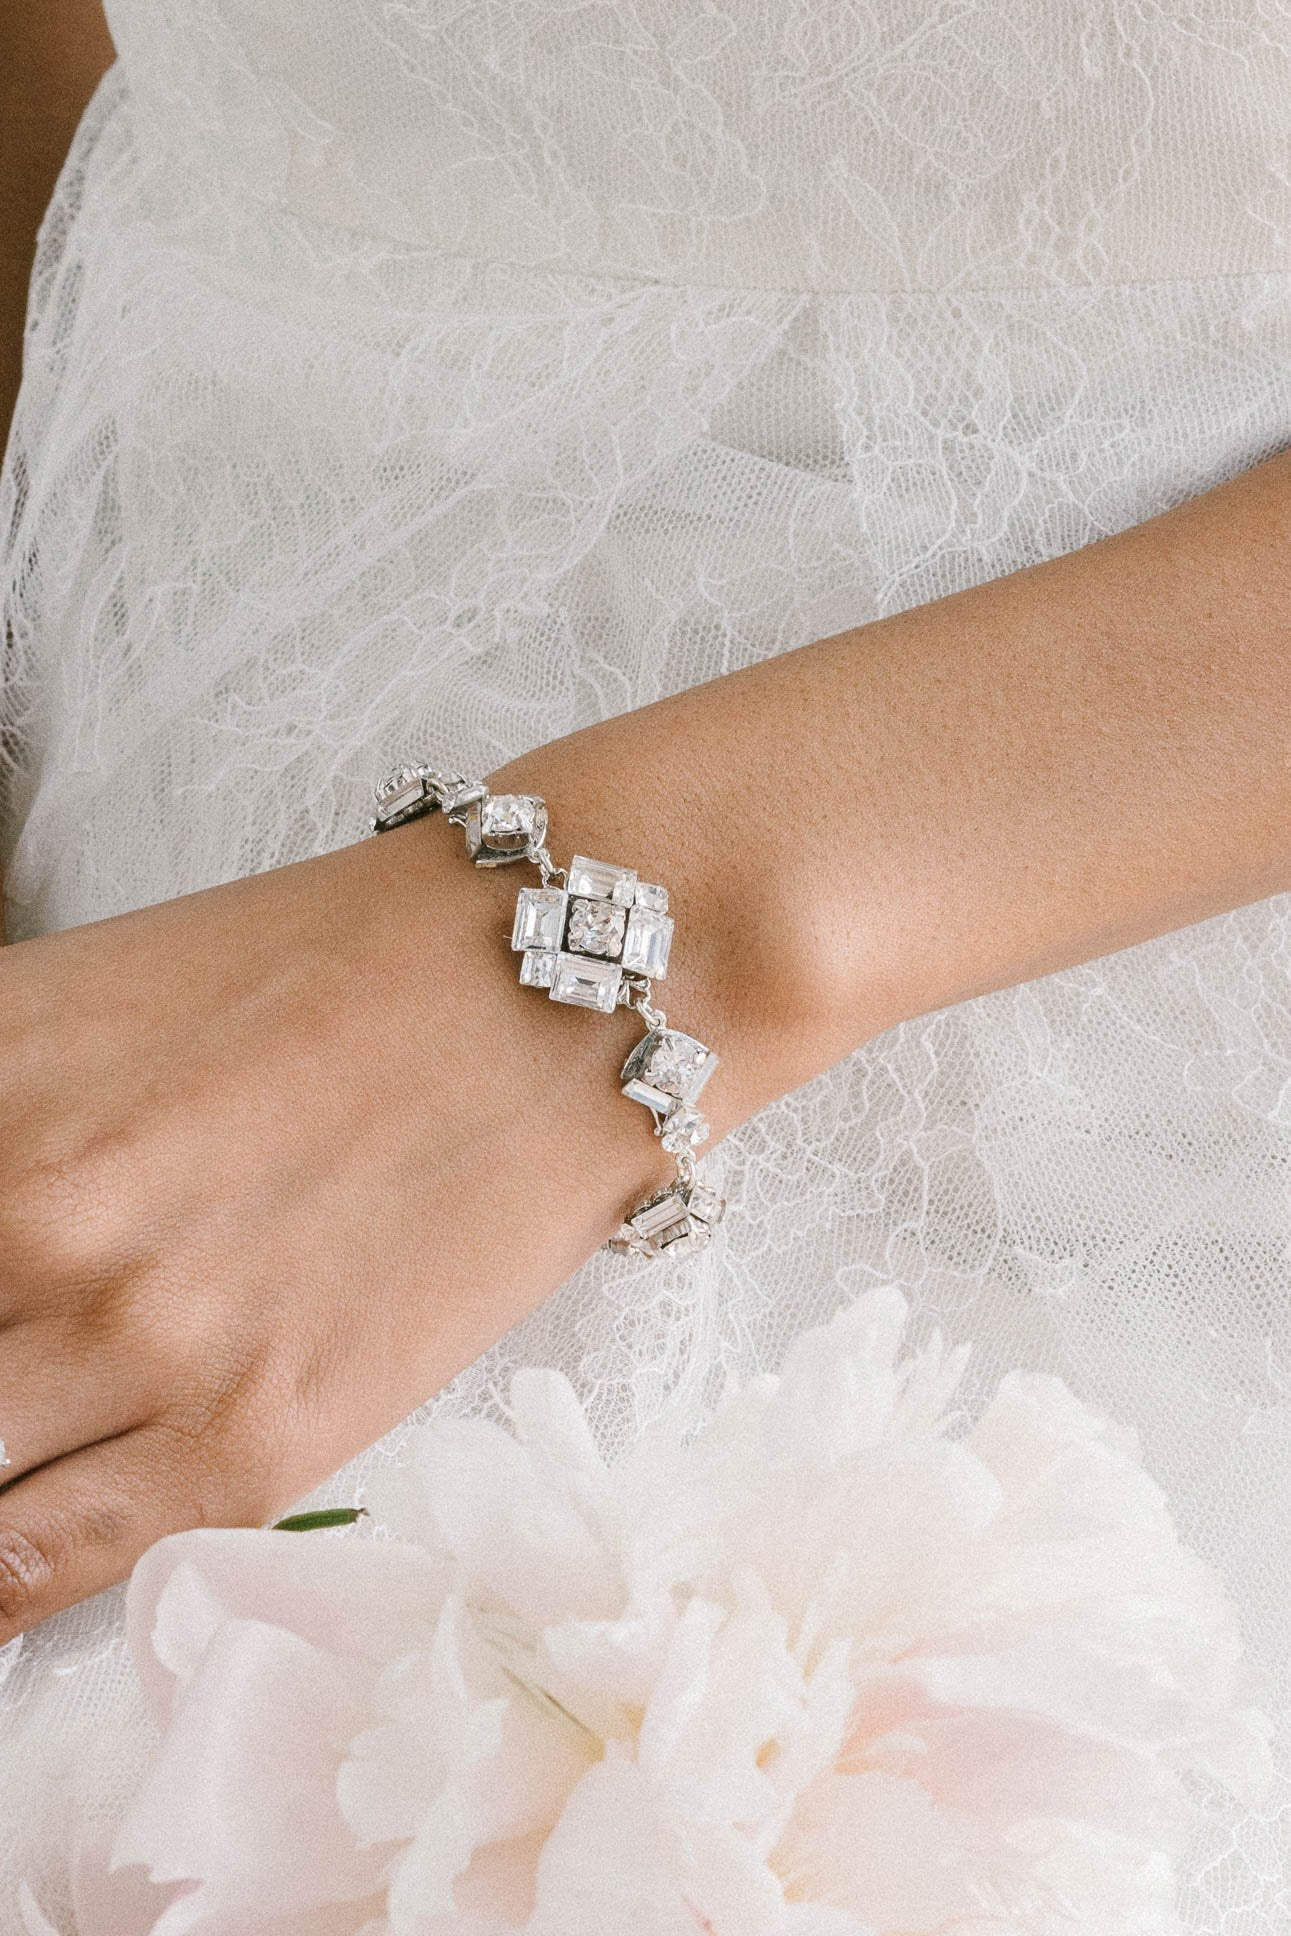 An arm is visible in the shot against a background of a wedding dress. The arm features an art deco-inspired bracelet around the wrist. It features multiple segments each of varying sizes. Each is made with clear Swarovski crystals. Sara Gabriel.